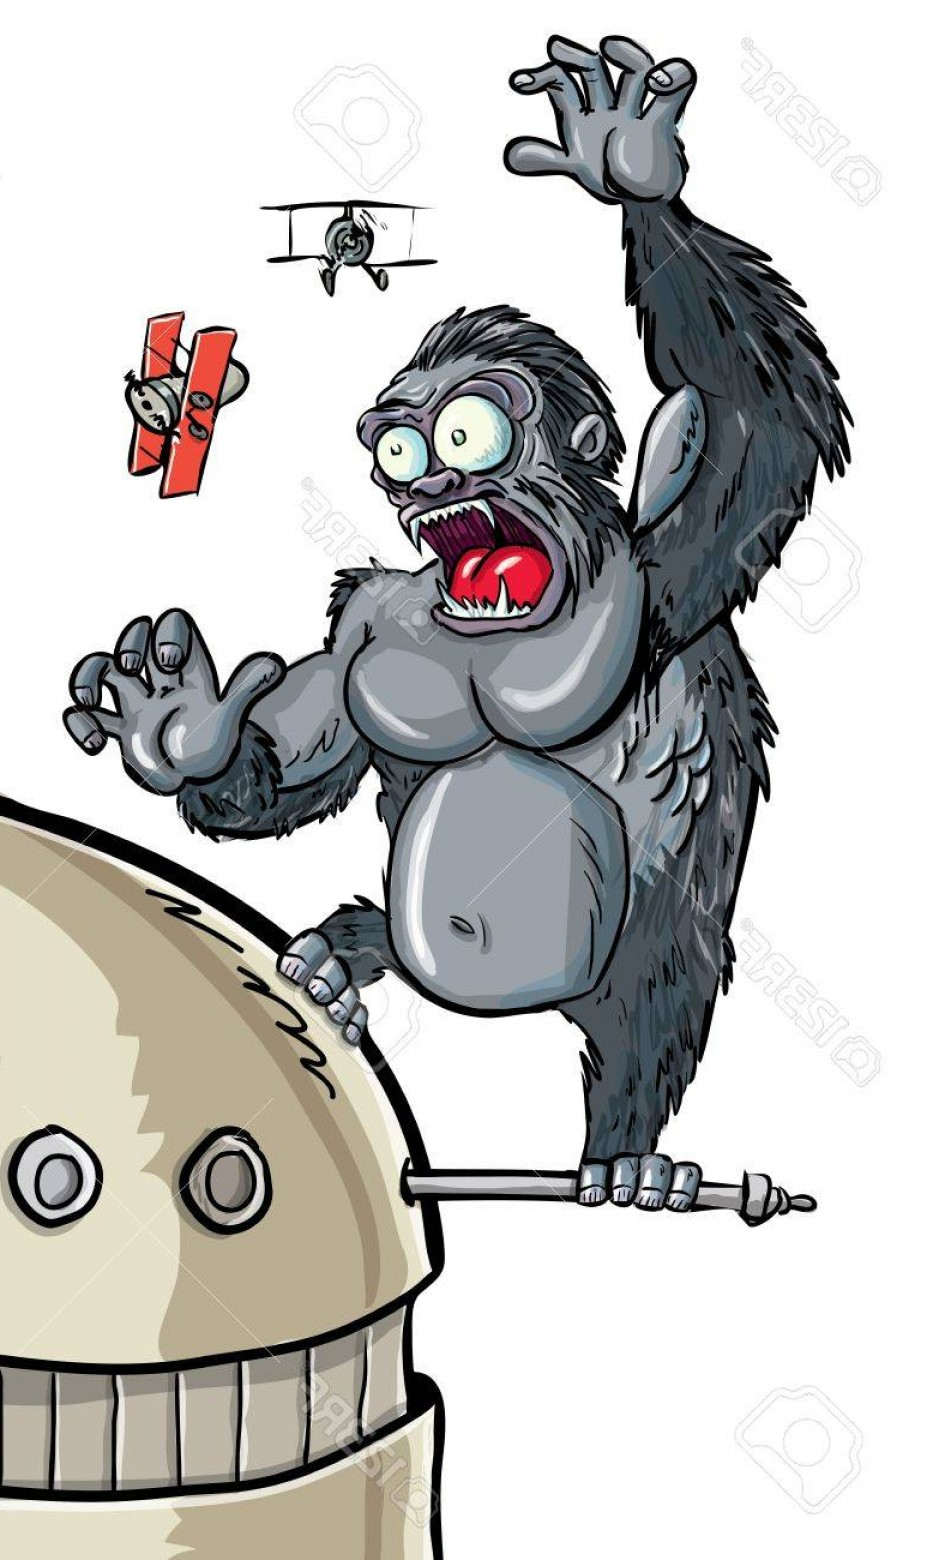 Drawings Of King Kong Vector: Photocartoon King Kong Hanging On A Skyscraper Isolated